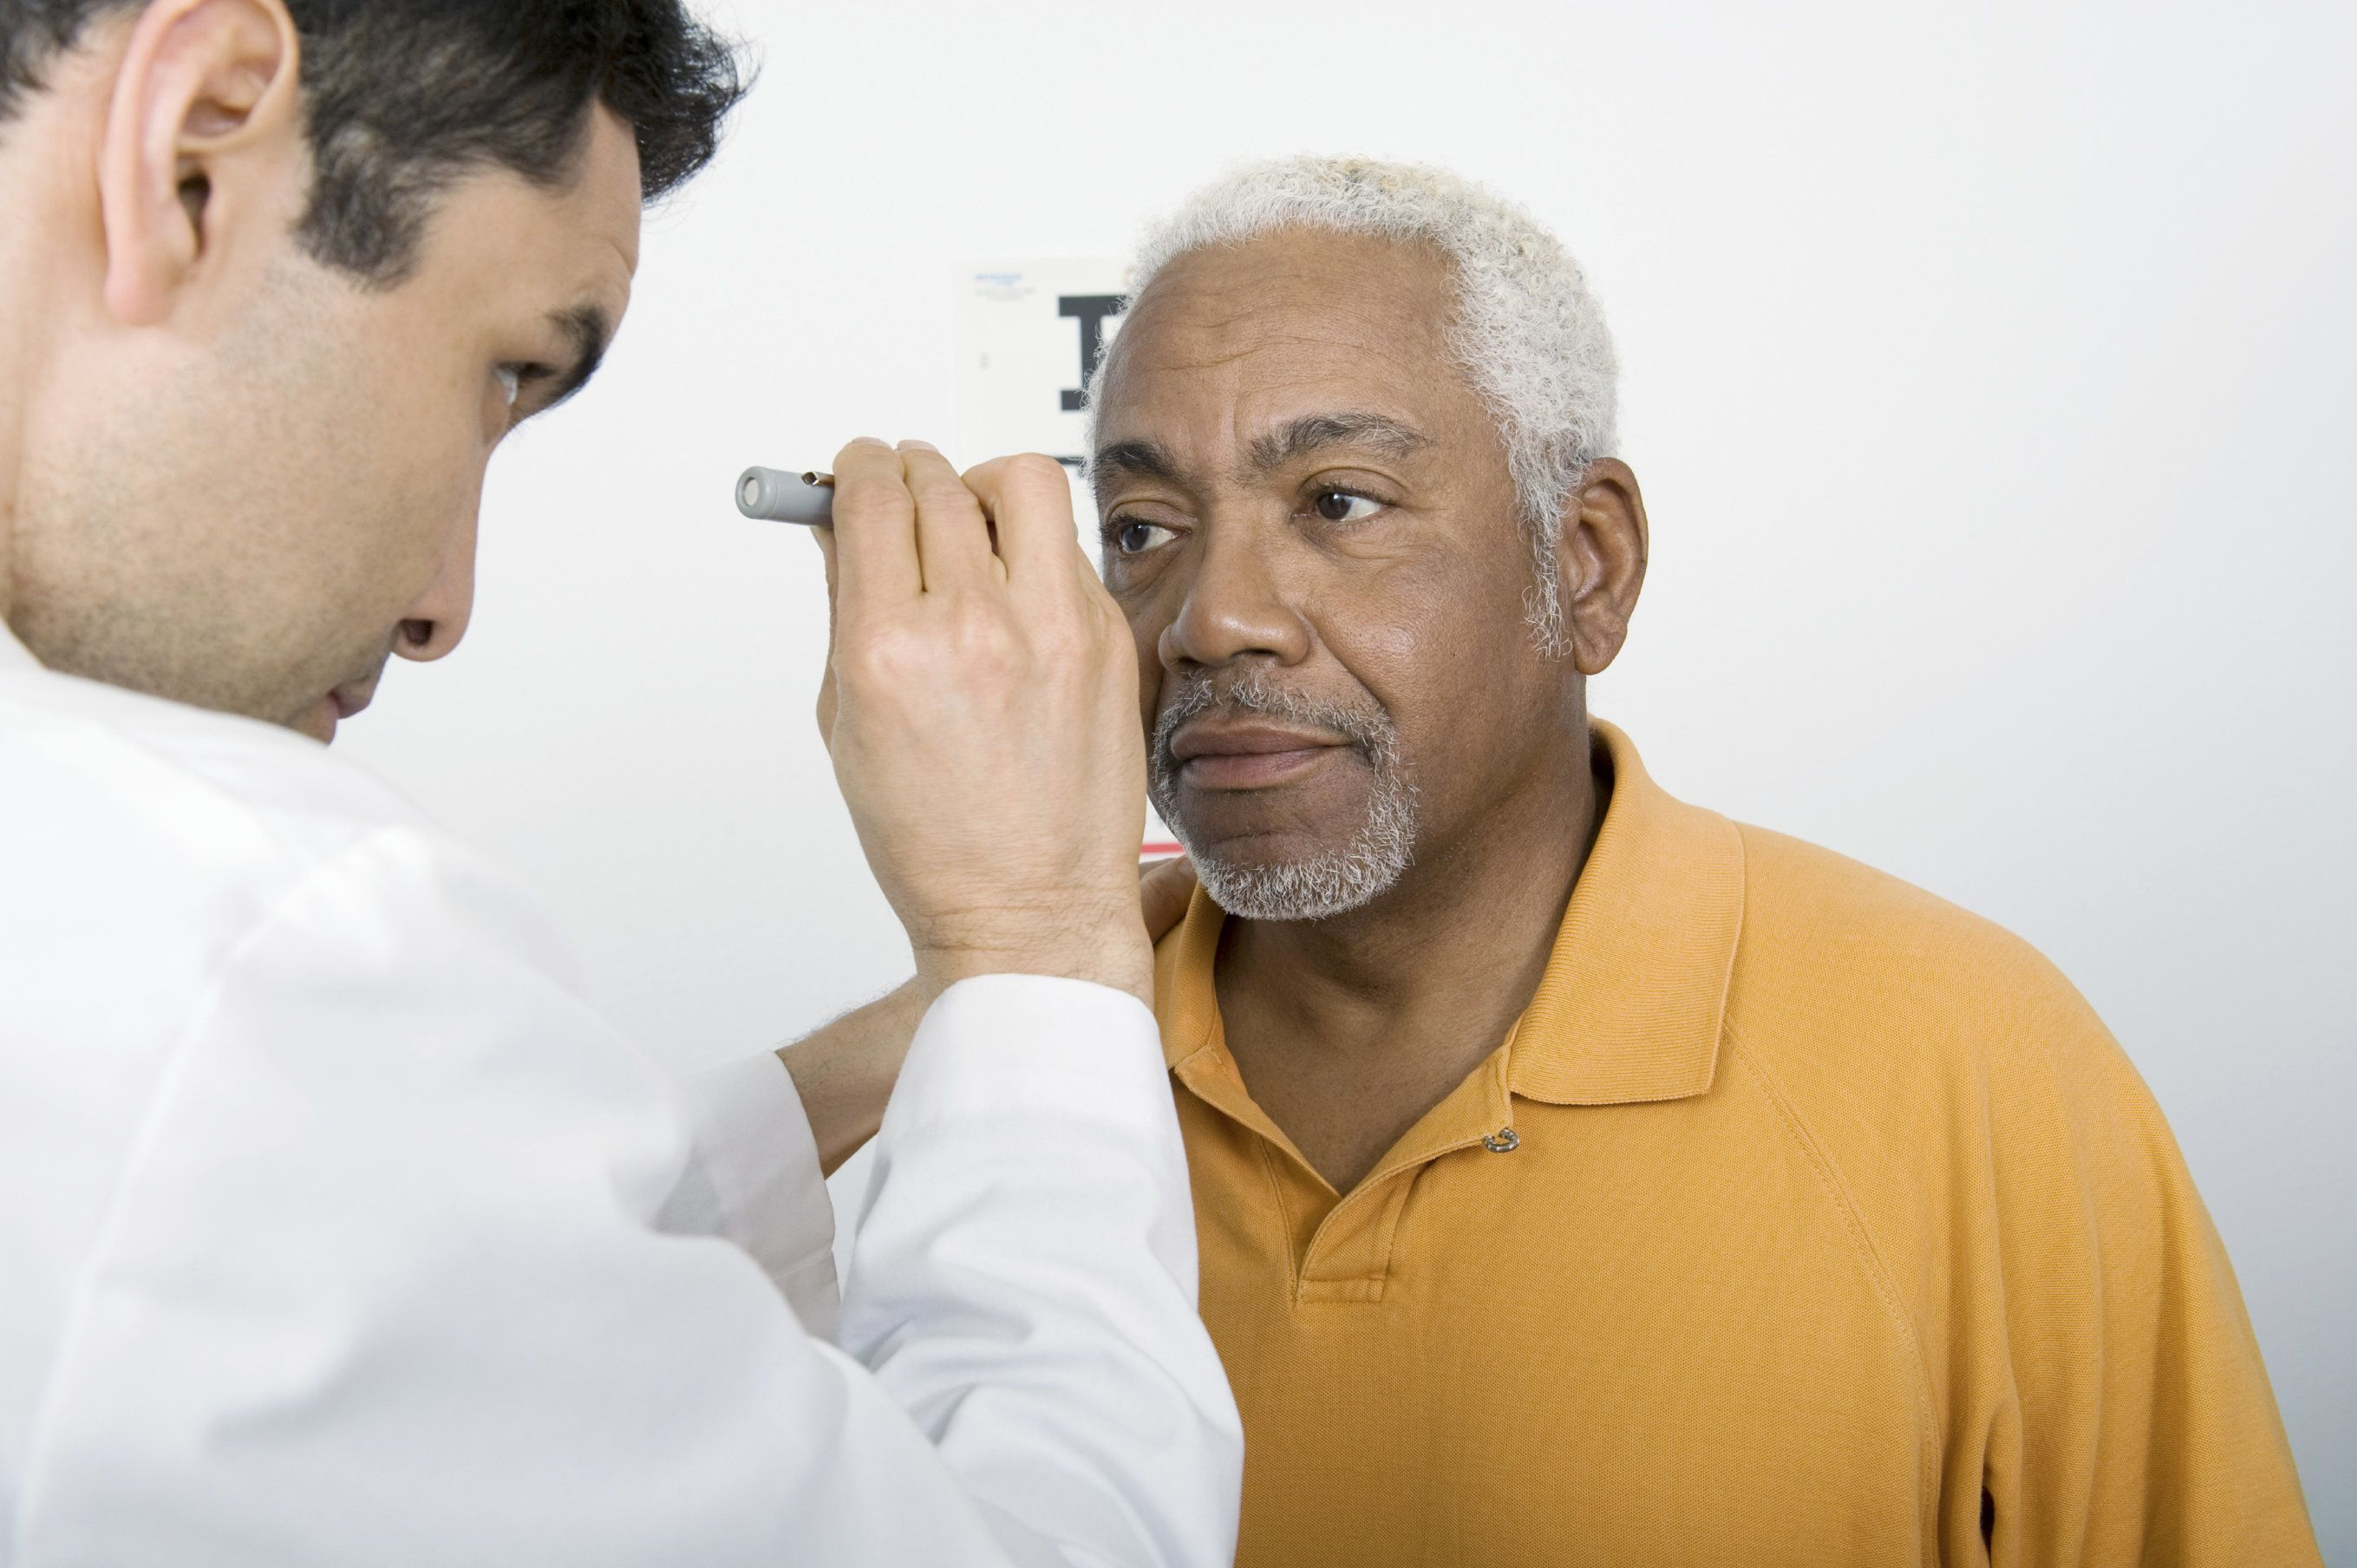 An elderly man undergoing an eye exam